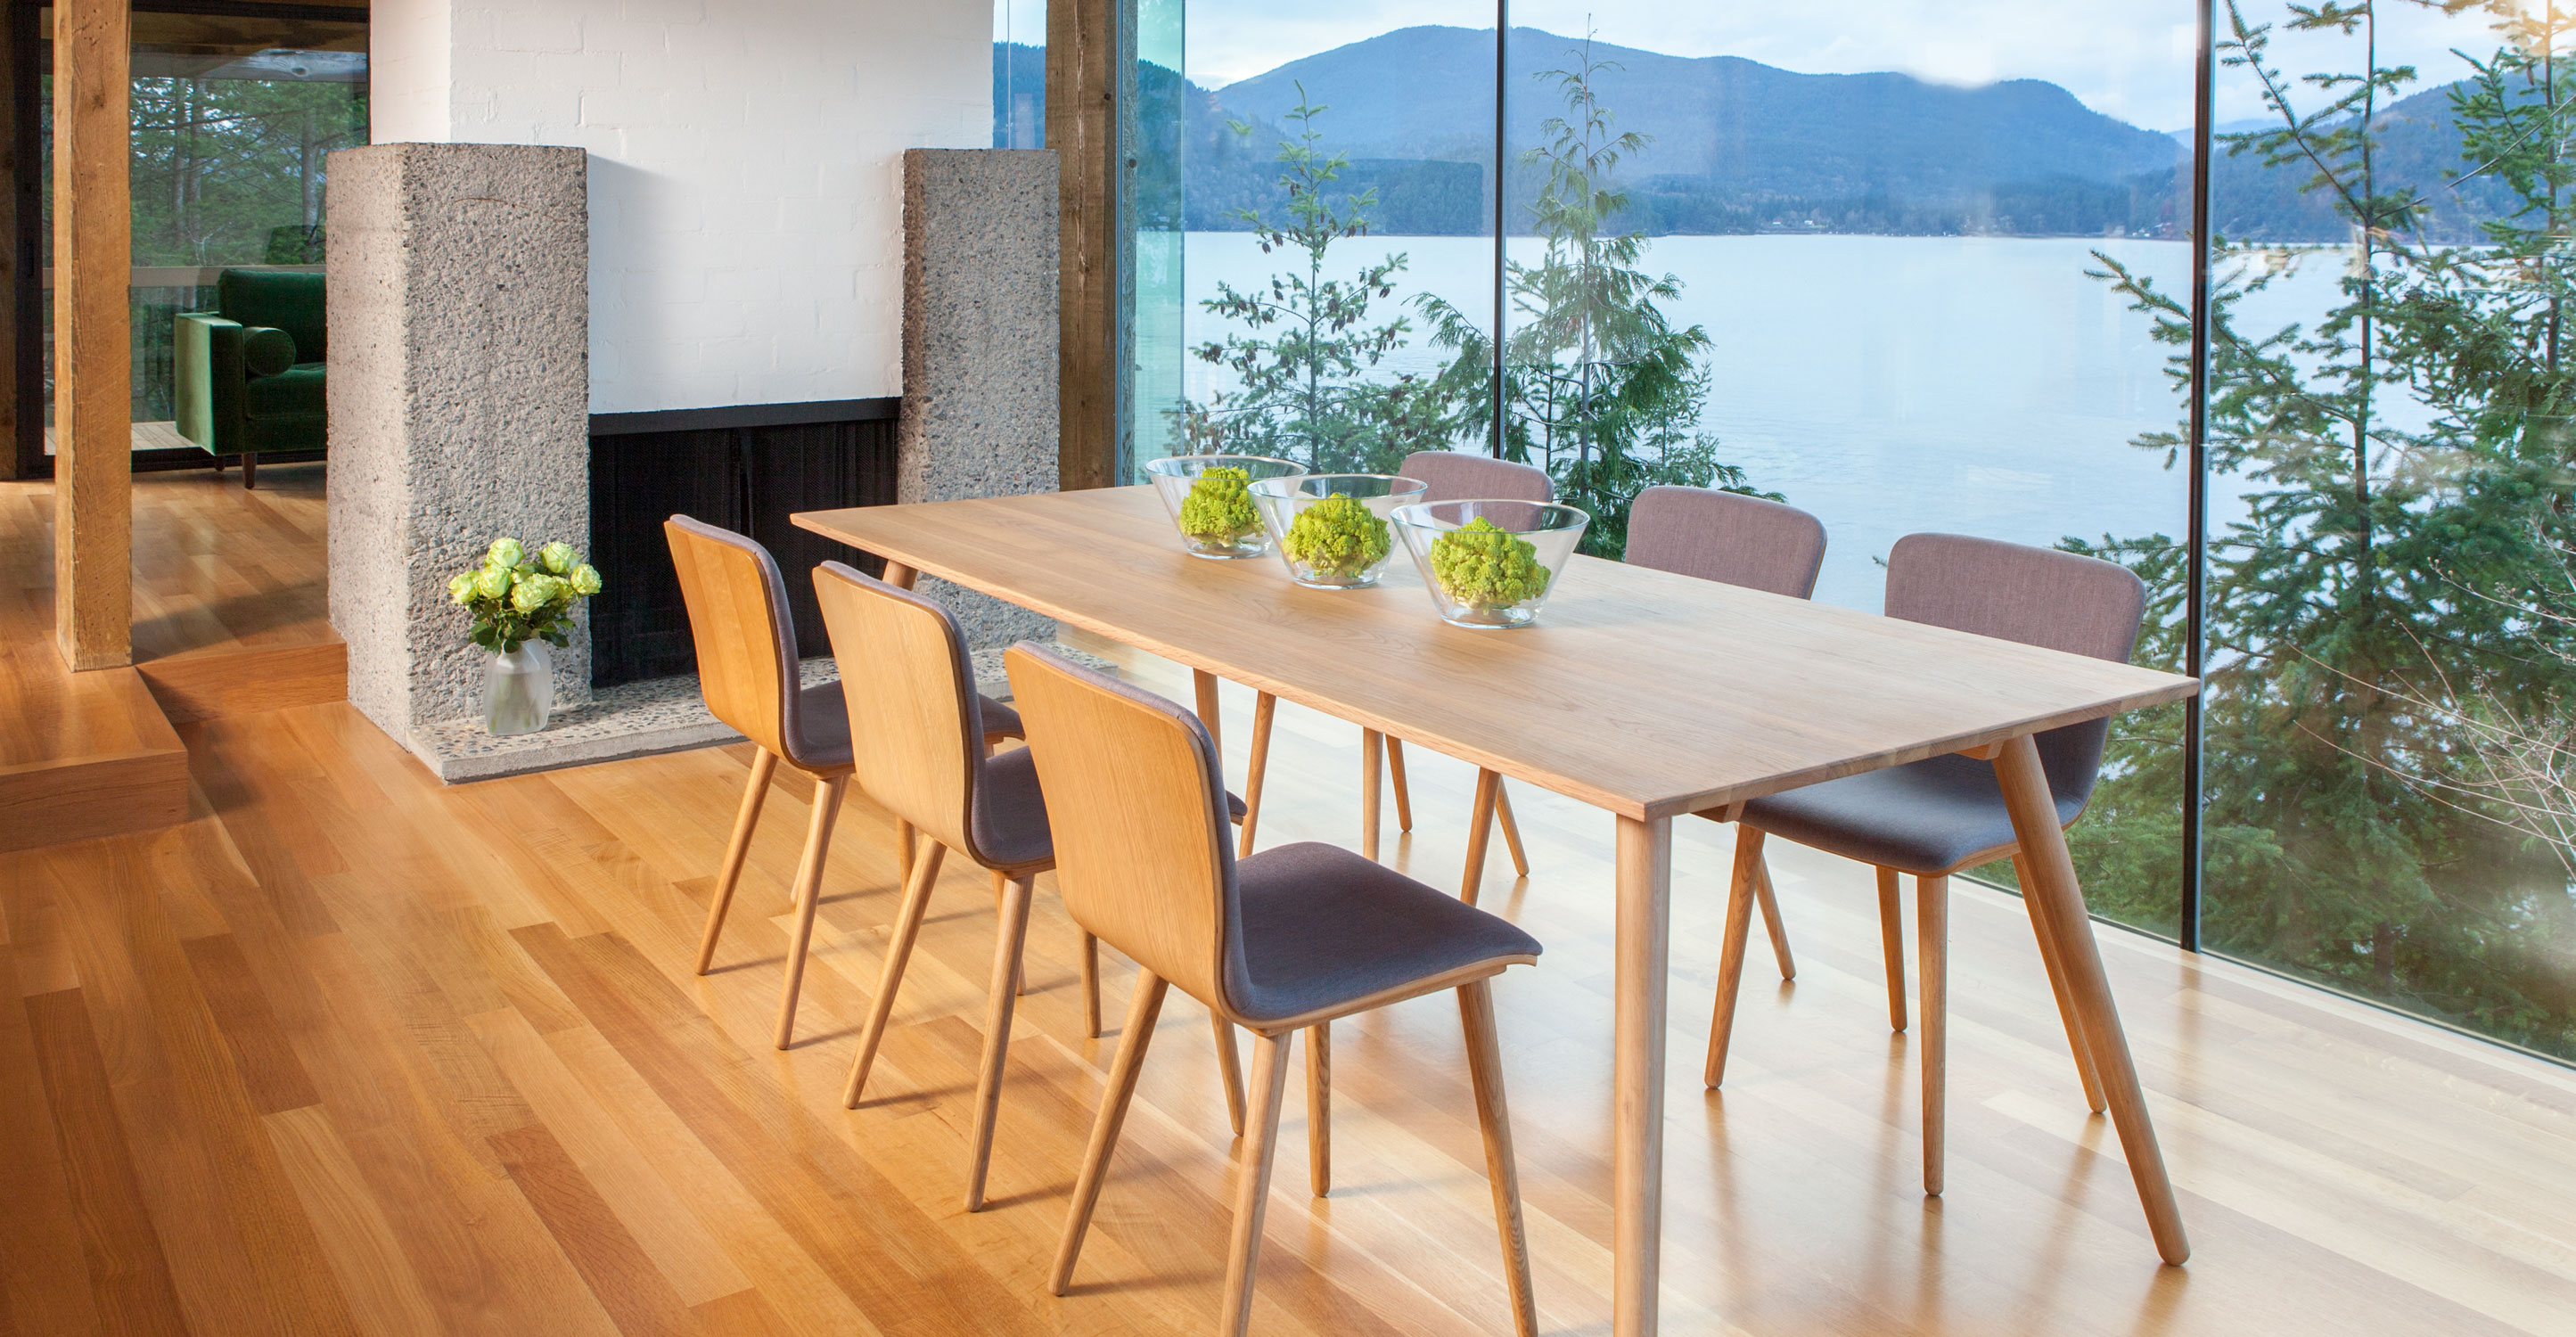 Seno Oak Dining Table for 8 - Articulate